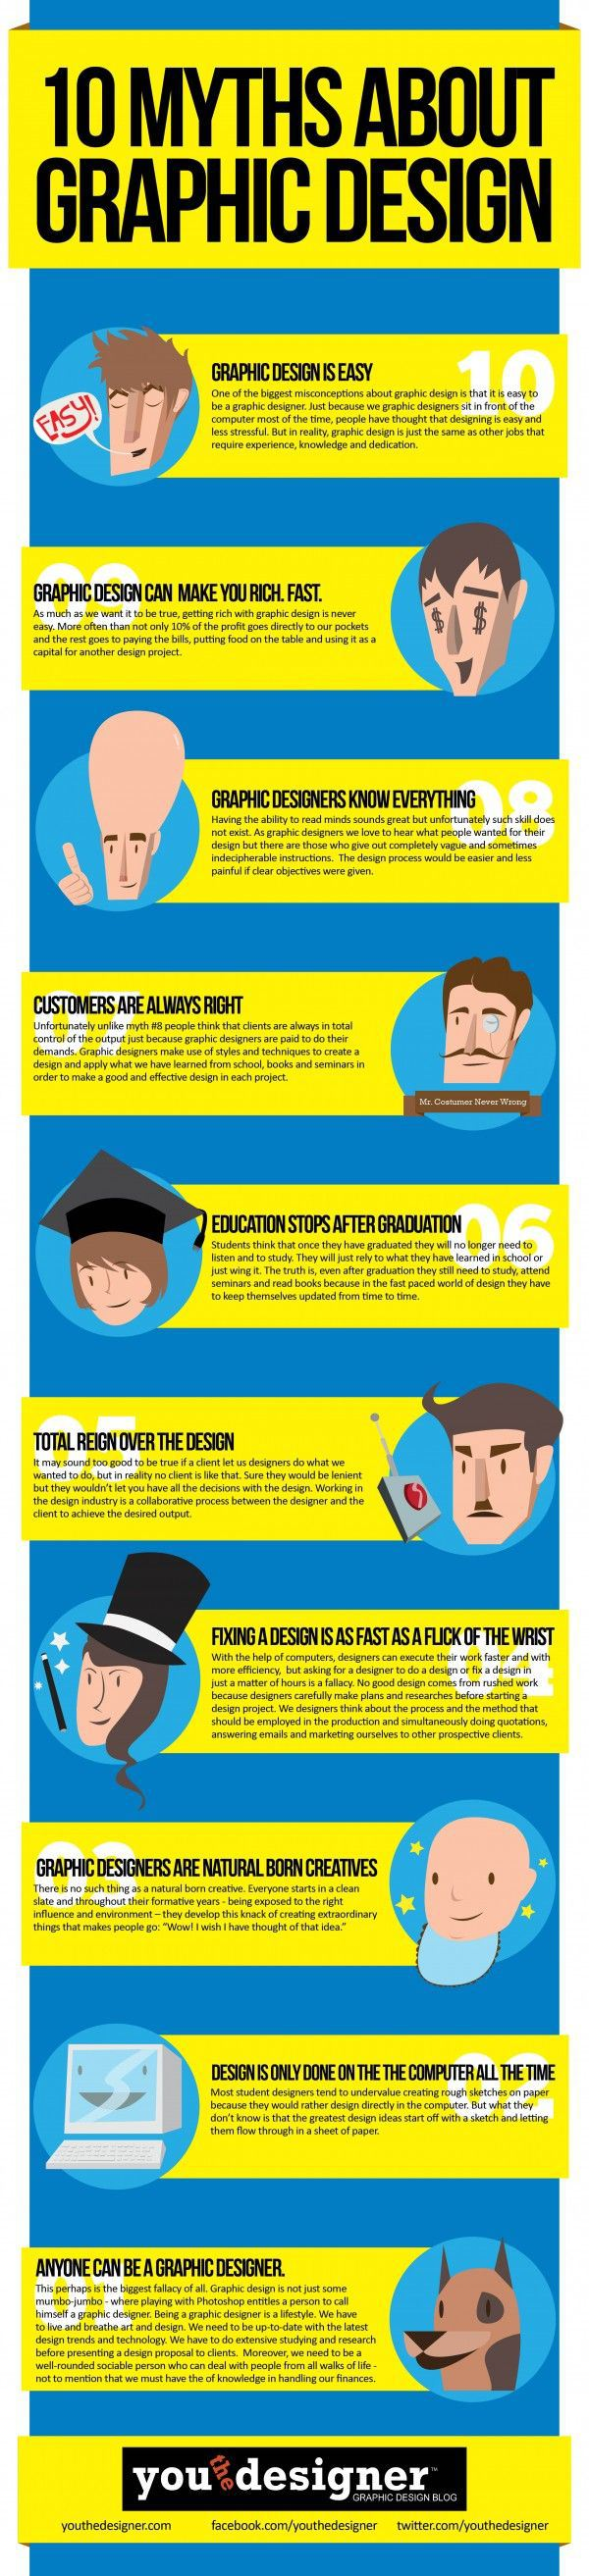 Infographic: 10 Myths About Graphic Design - You The Designer - WorkLAD - Lad Banter Funny LAD Pics